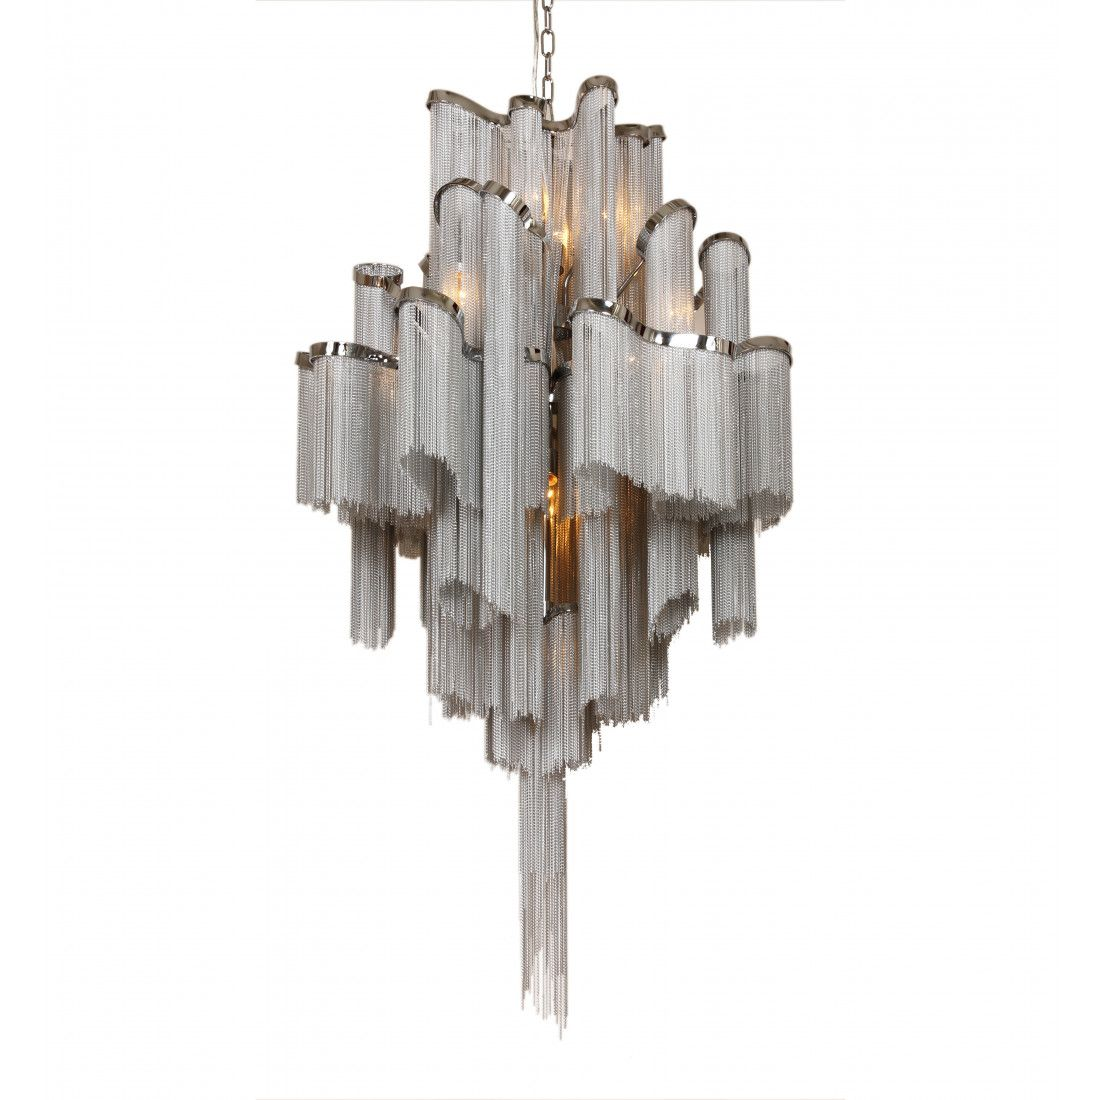 Clear glass modern murano chandelier l16k white lamp shades - Modern Reproduction Stream Suspension Light Chain Chandelier Inspired By Christian Lava